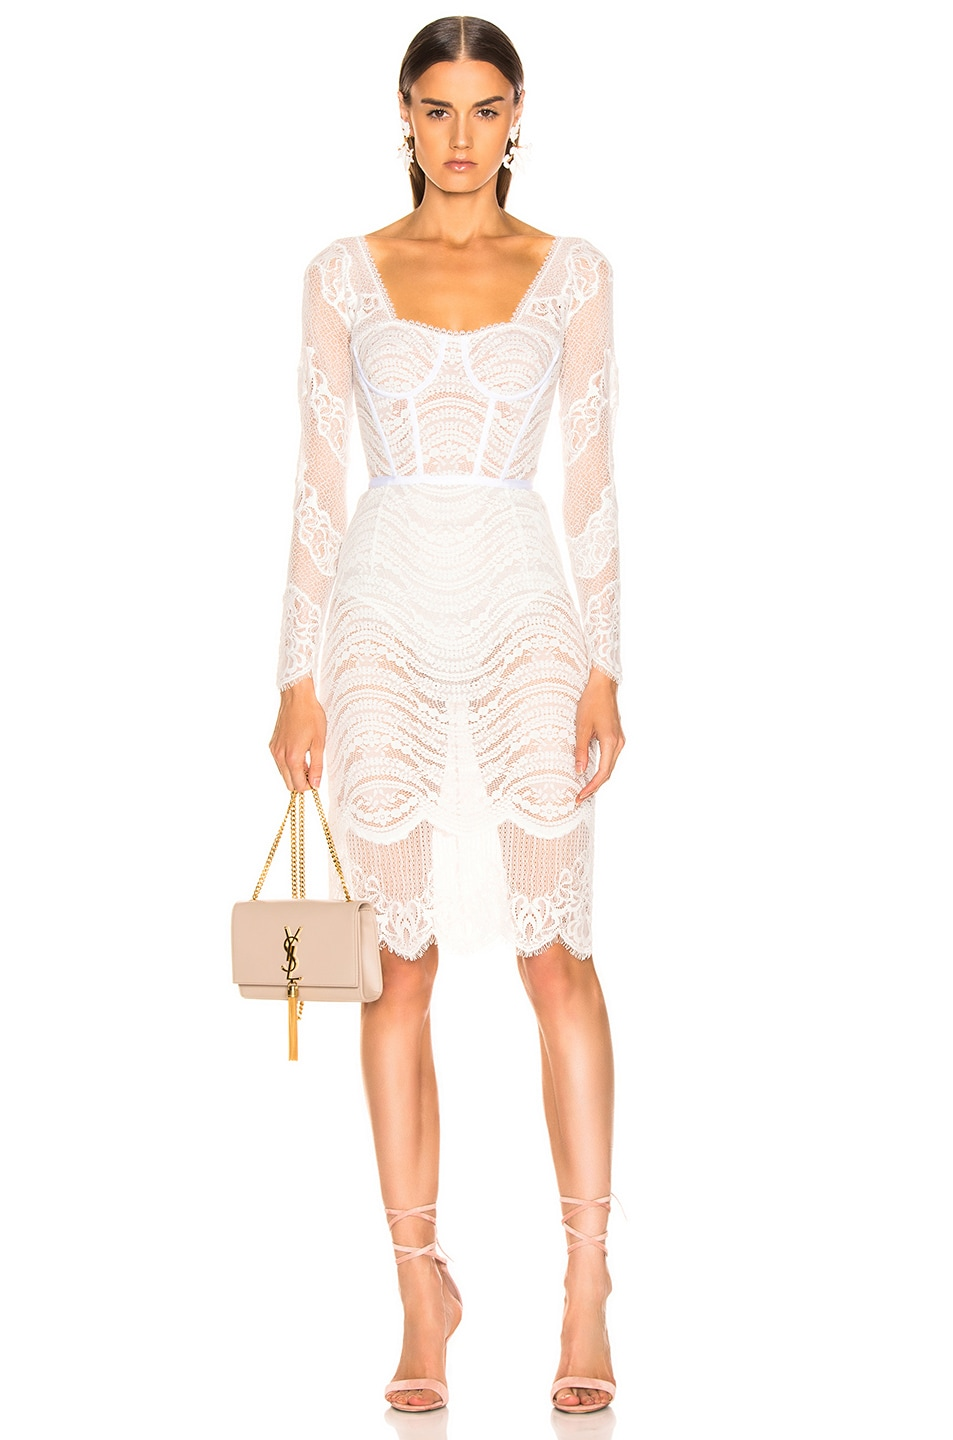 Image 1 of JONATHAN SIMKHAI Lace Bustier Bodysuit Dress in White